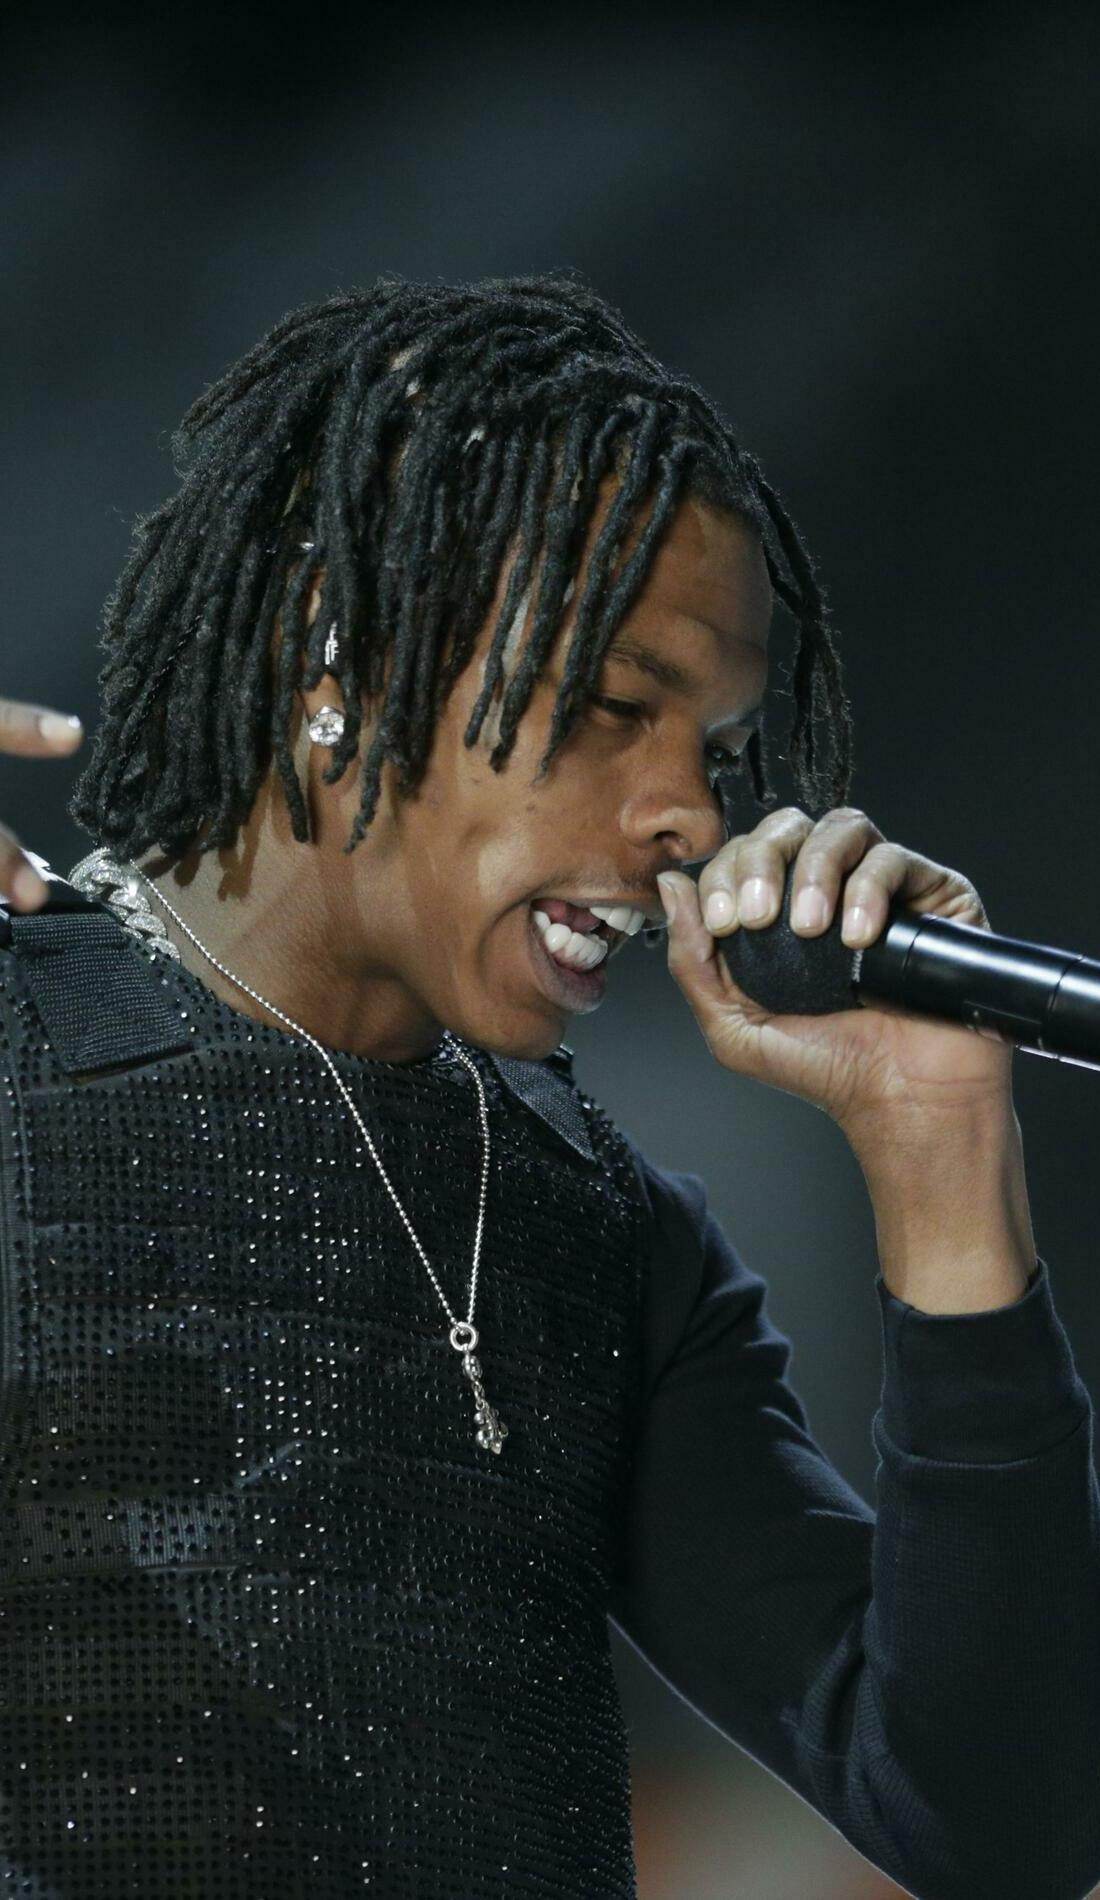 A Lil Baby live event